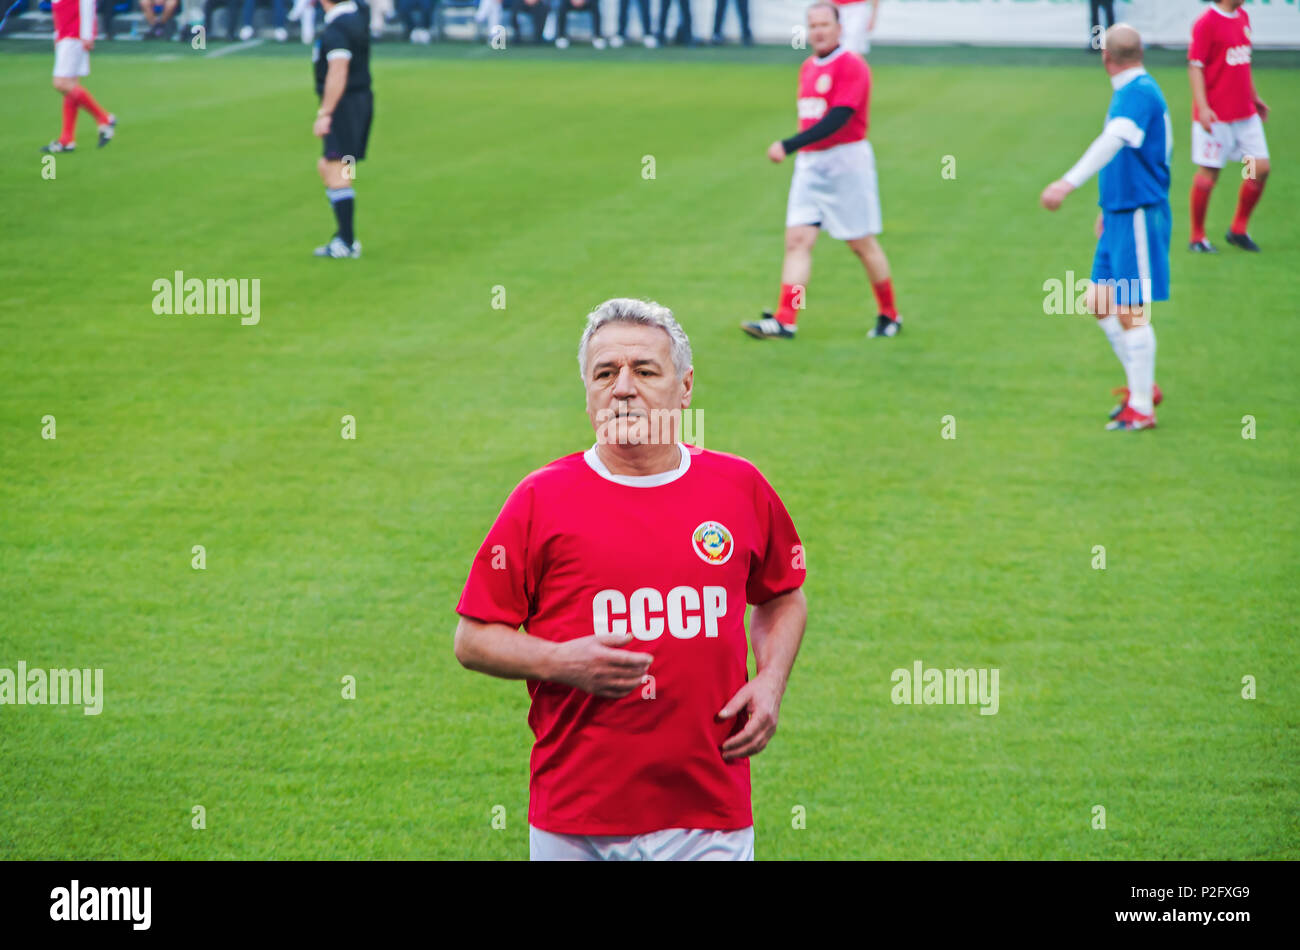 Dnipro, Ukraine - October 12, 2013: Celebrating the anniversary of the victories of 'Dnipro' in the USSR Championship in 1983 and 1988. Match veterans - Stock Image